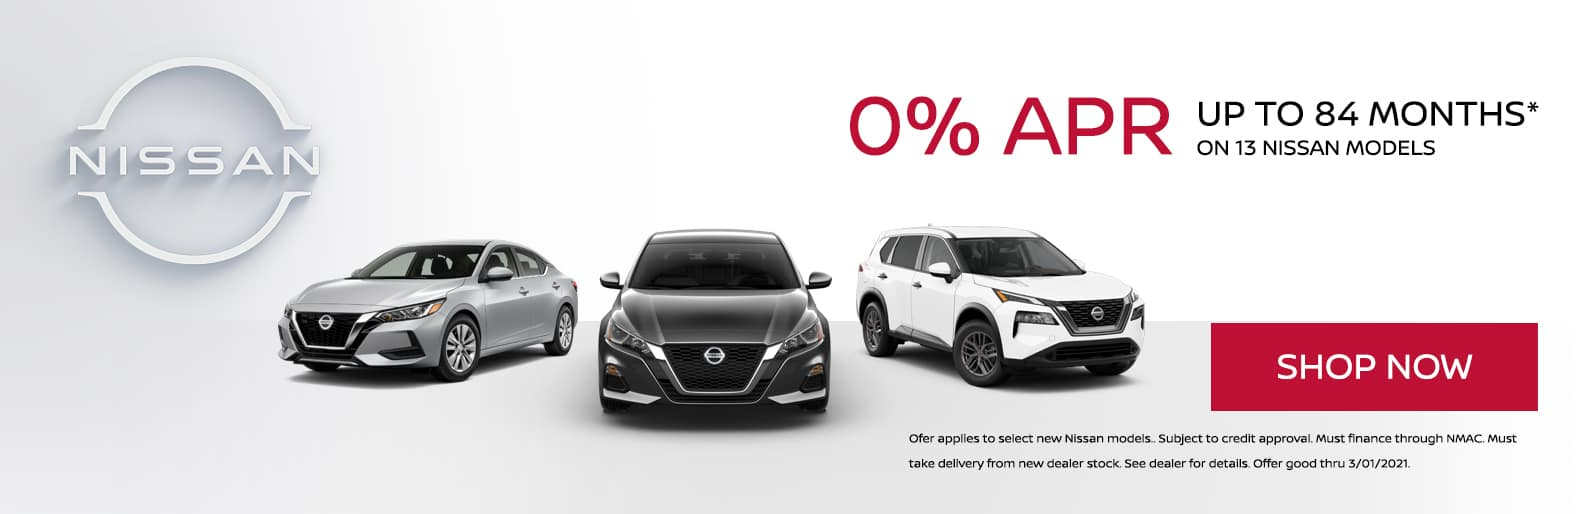 0% APR up to 84 months on 13 new Nissan models.